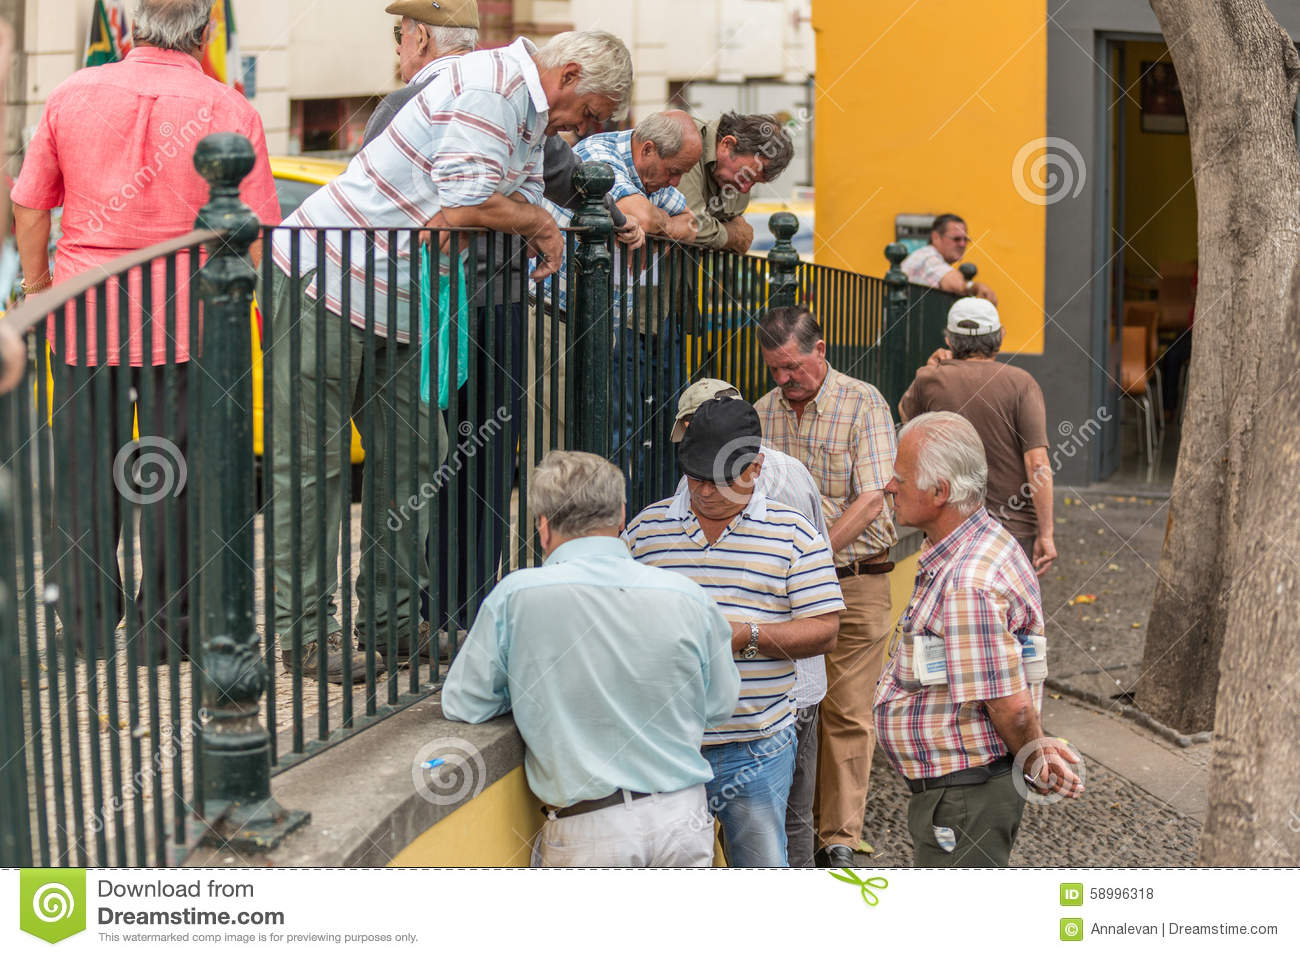 FUNCHAL, PORTUGAL - JUNE 27, 2015: Active retirement, old people and seniors free time, elderly men having fun and playing cards